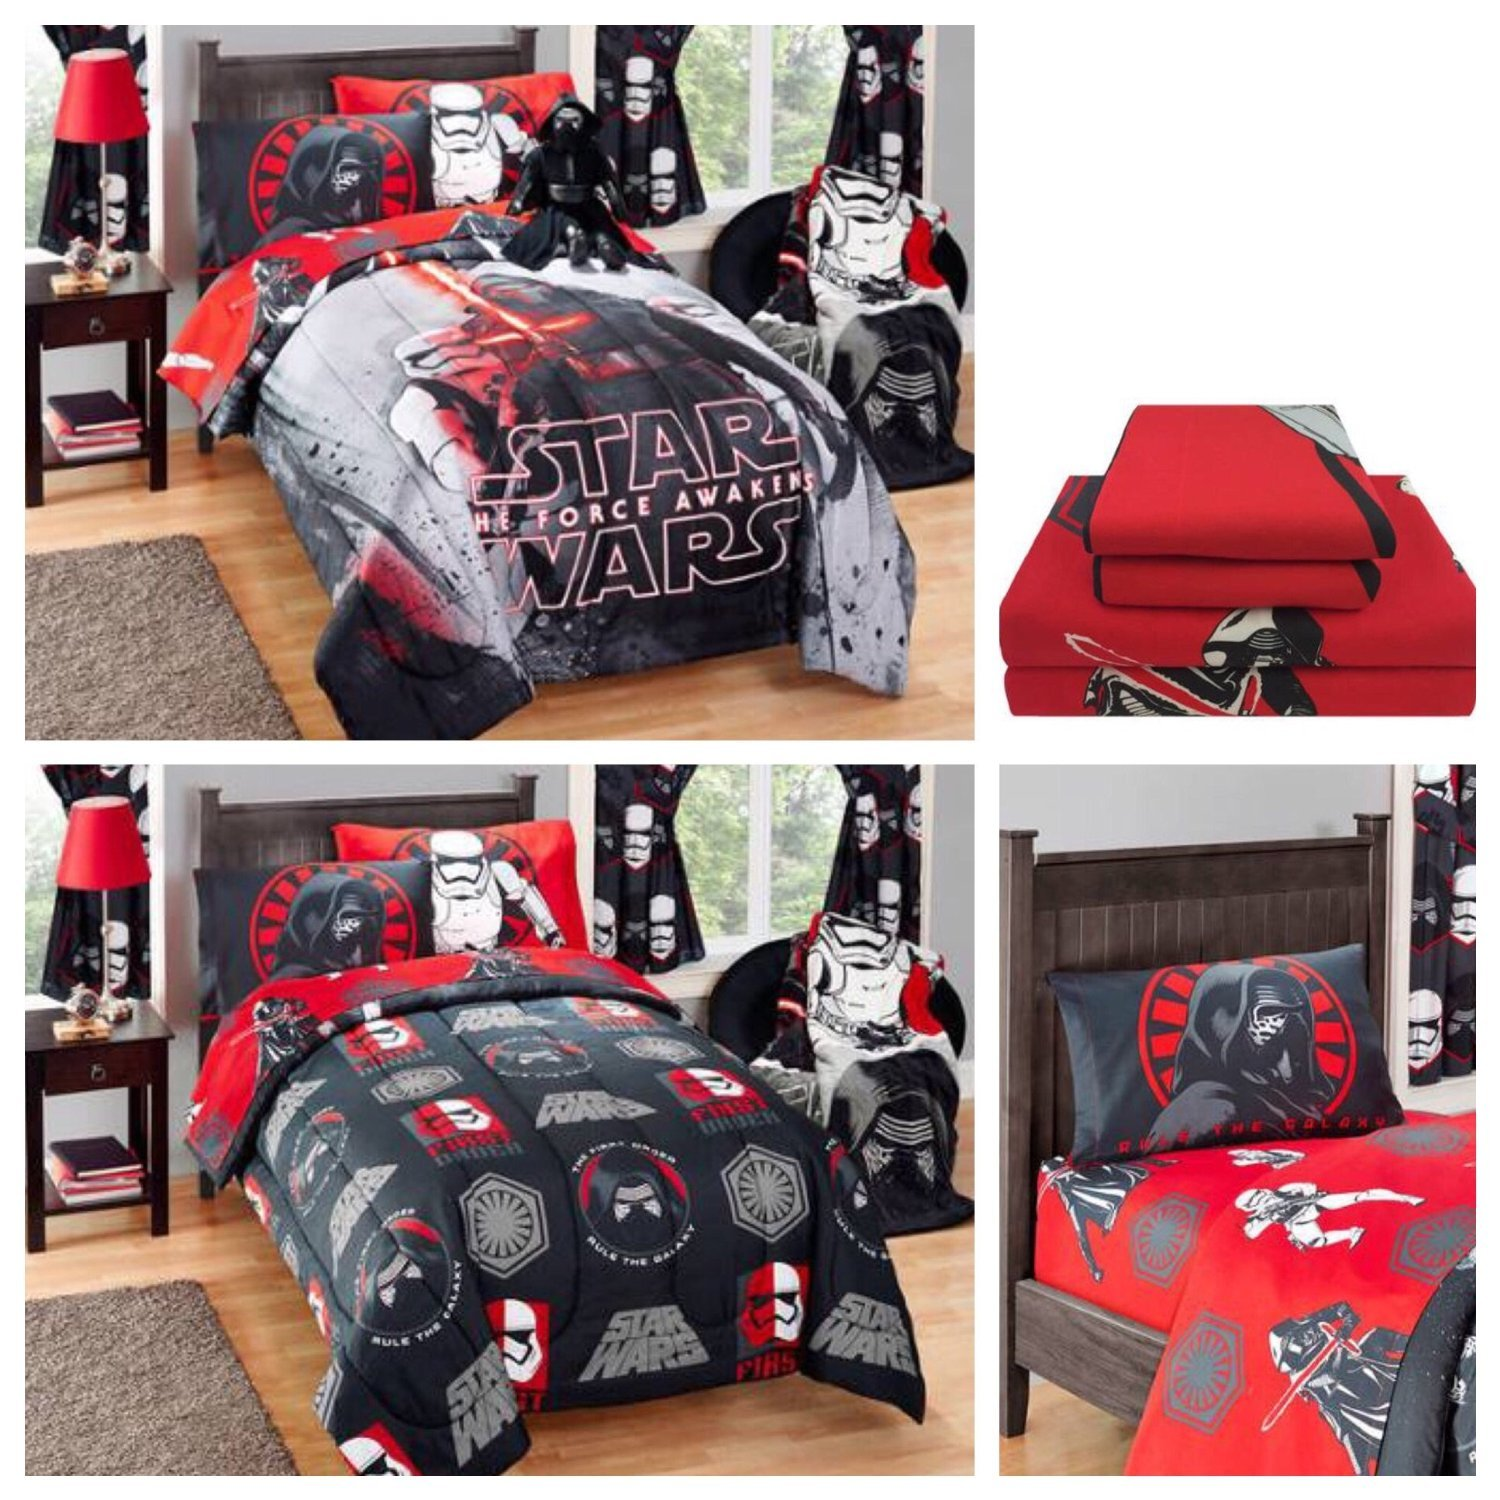 Disney Star Wars Kylo Ren Kids Reversible Comforter & Microfiber Sheets Bedding Set - Full by Disney